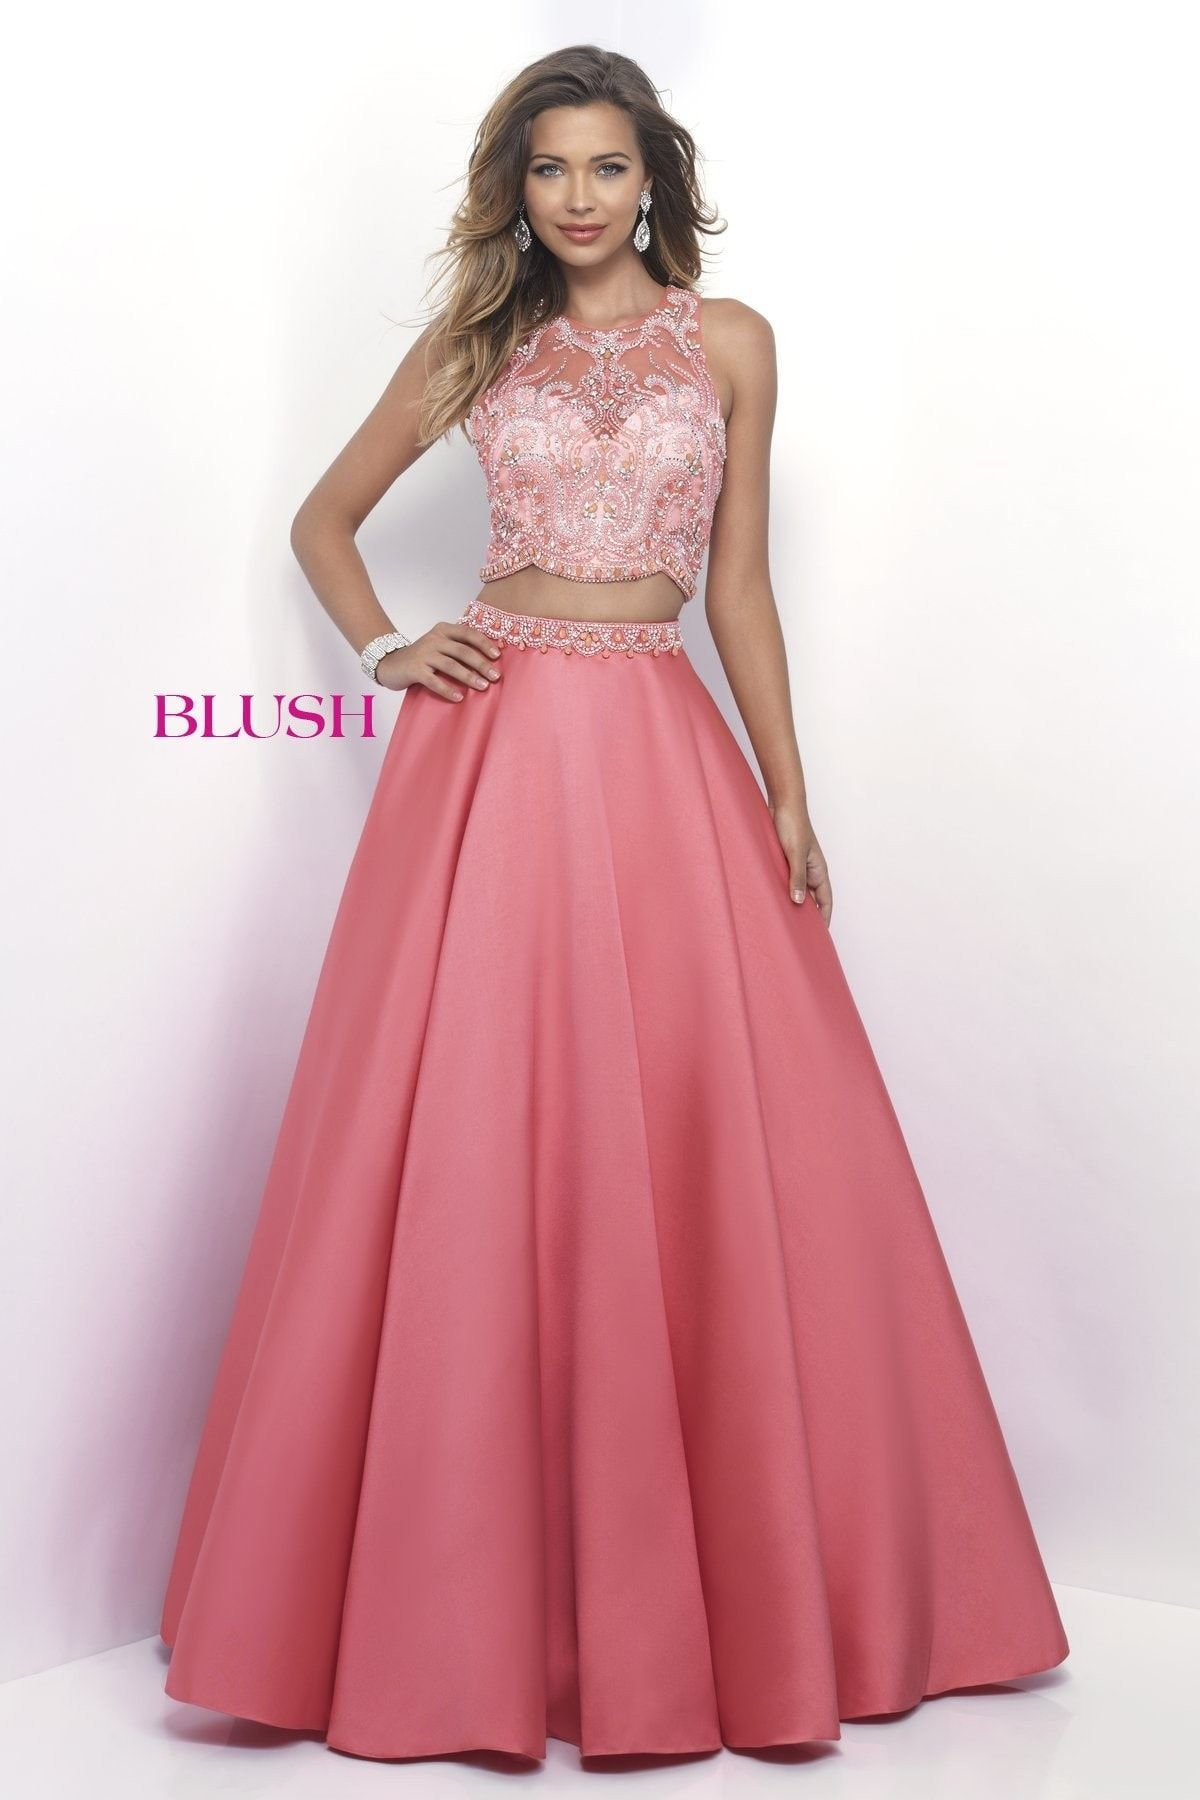 Pink by Blush 5619 Bittersweet Beaded Two-Piece Prom Dress | Ladies ...